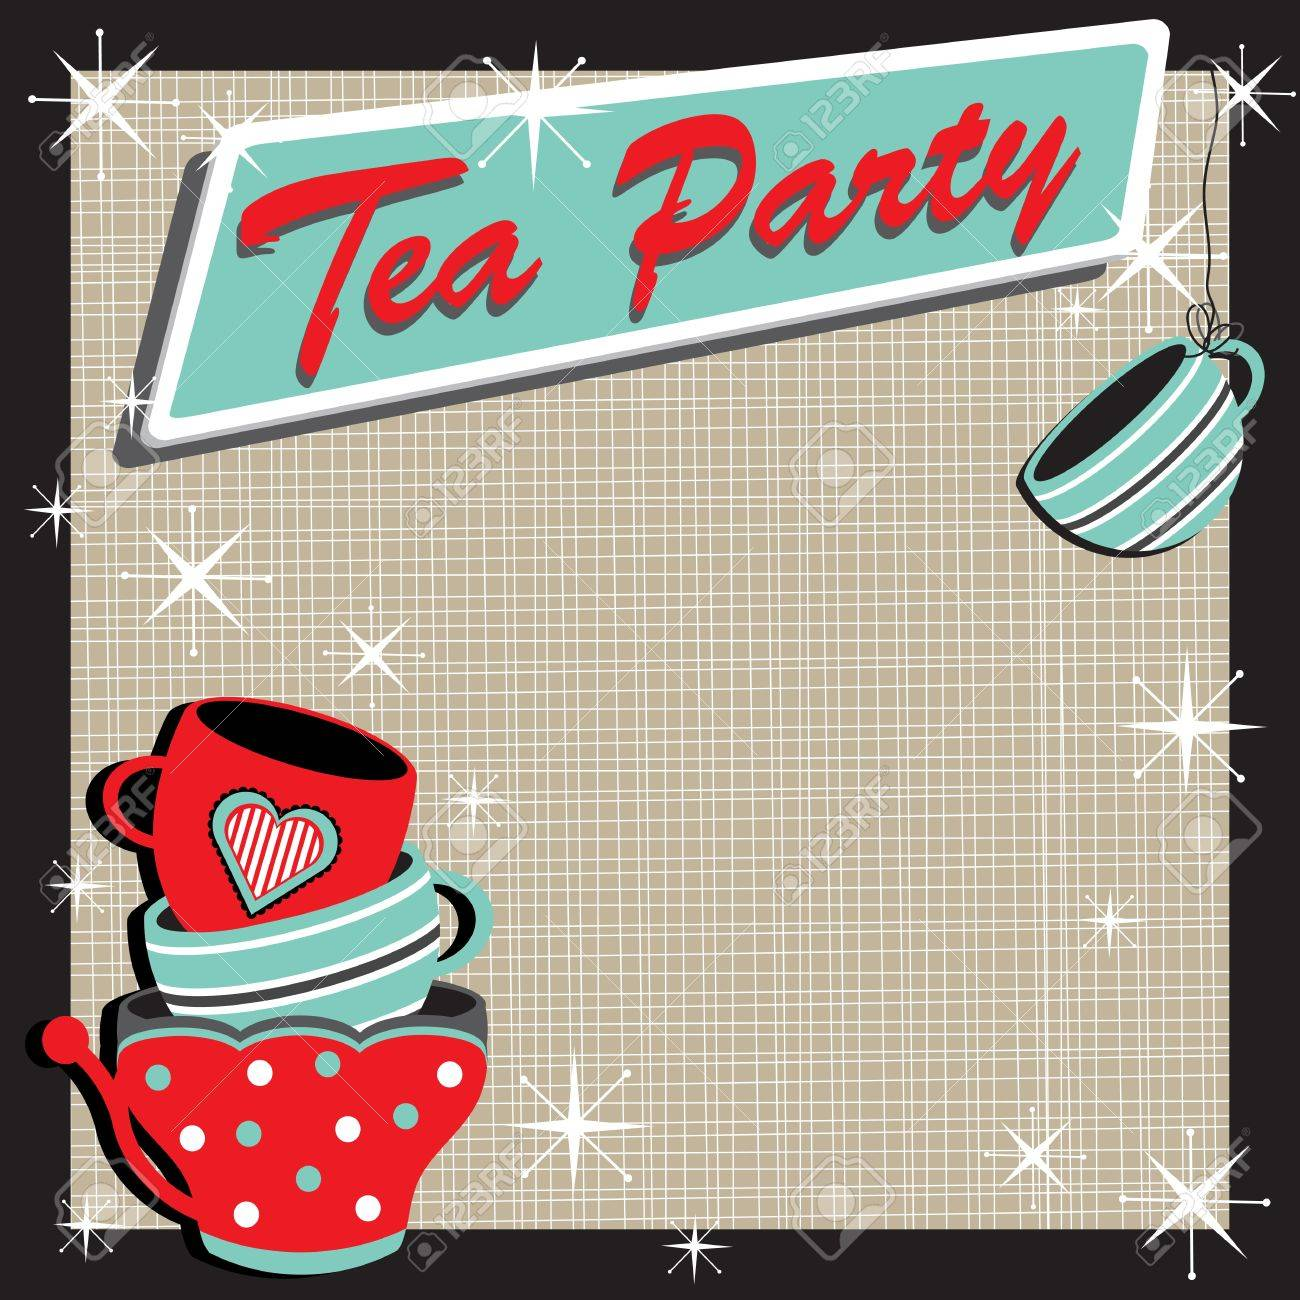 Stacked Tea Cups Tea Party Invitation In A Retro Style Royalty Free ...